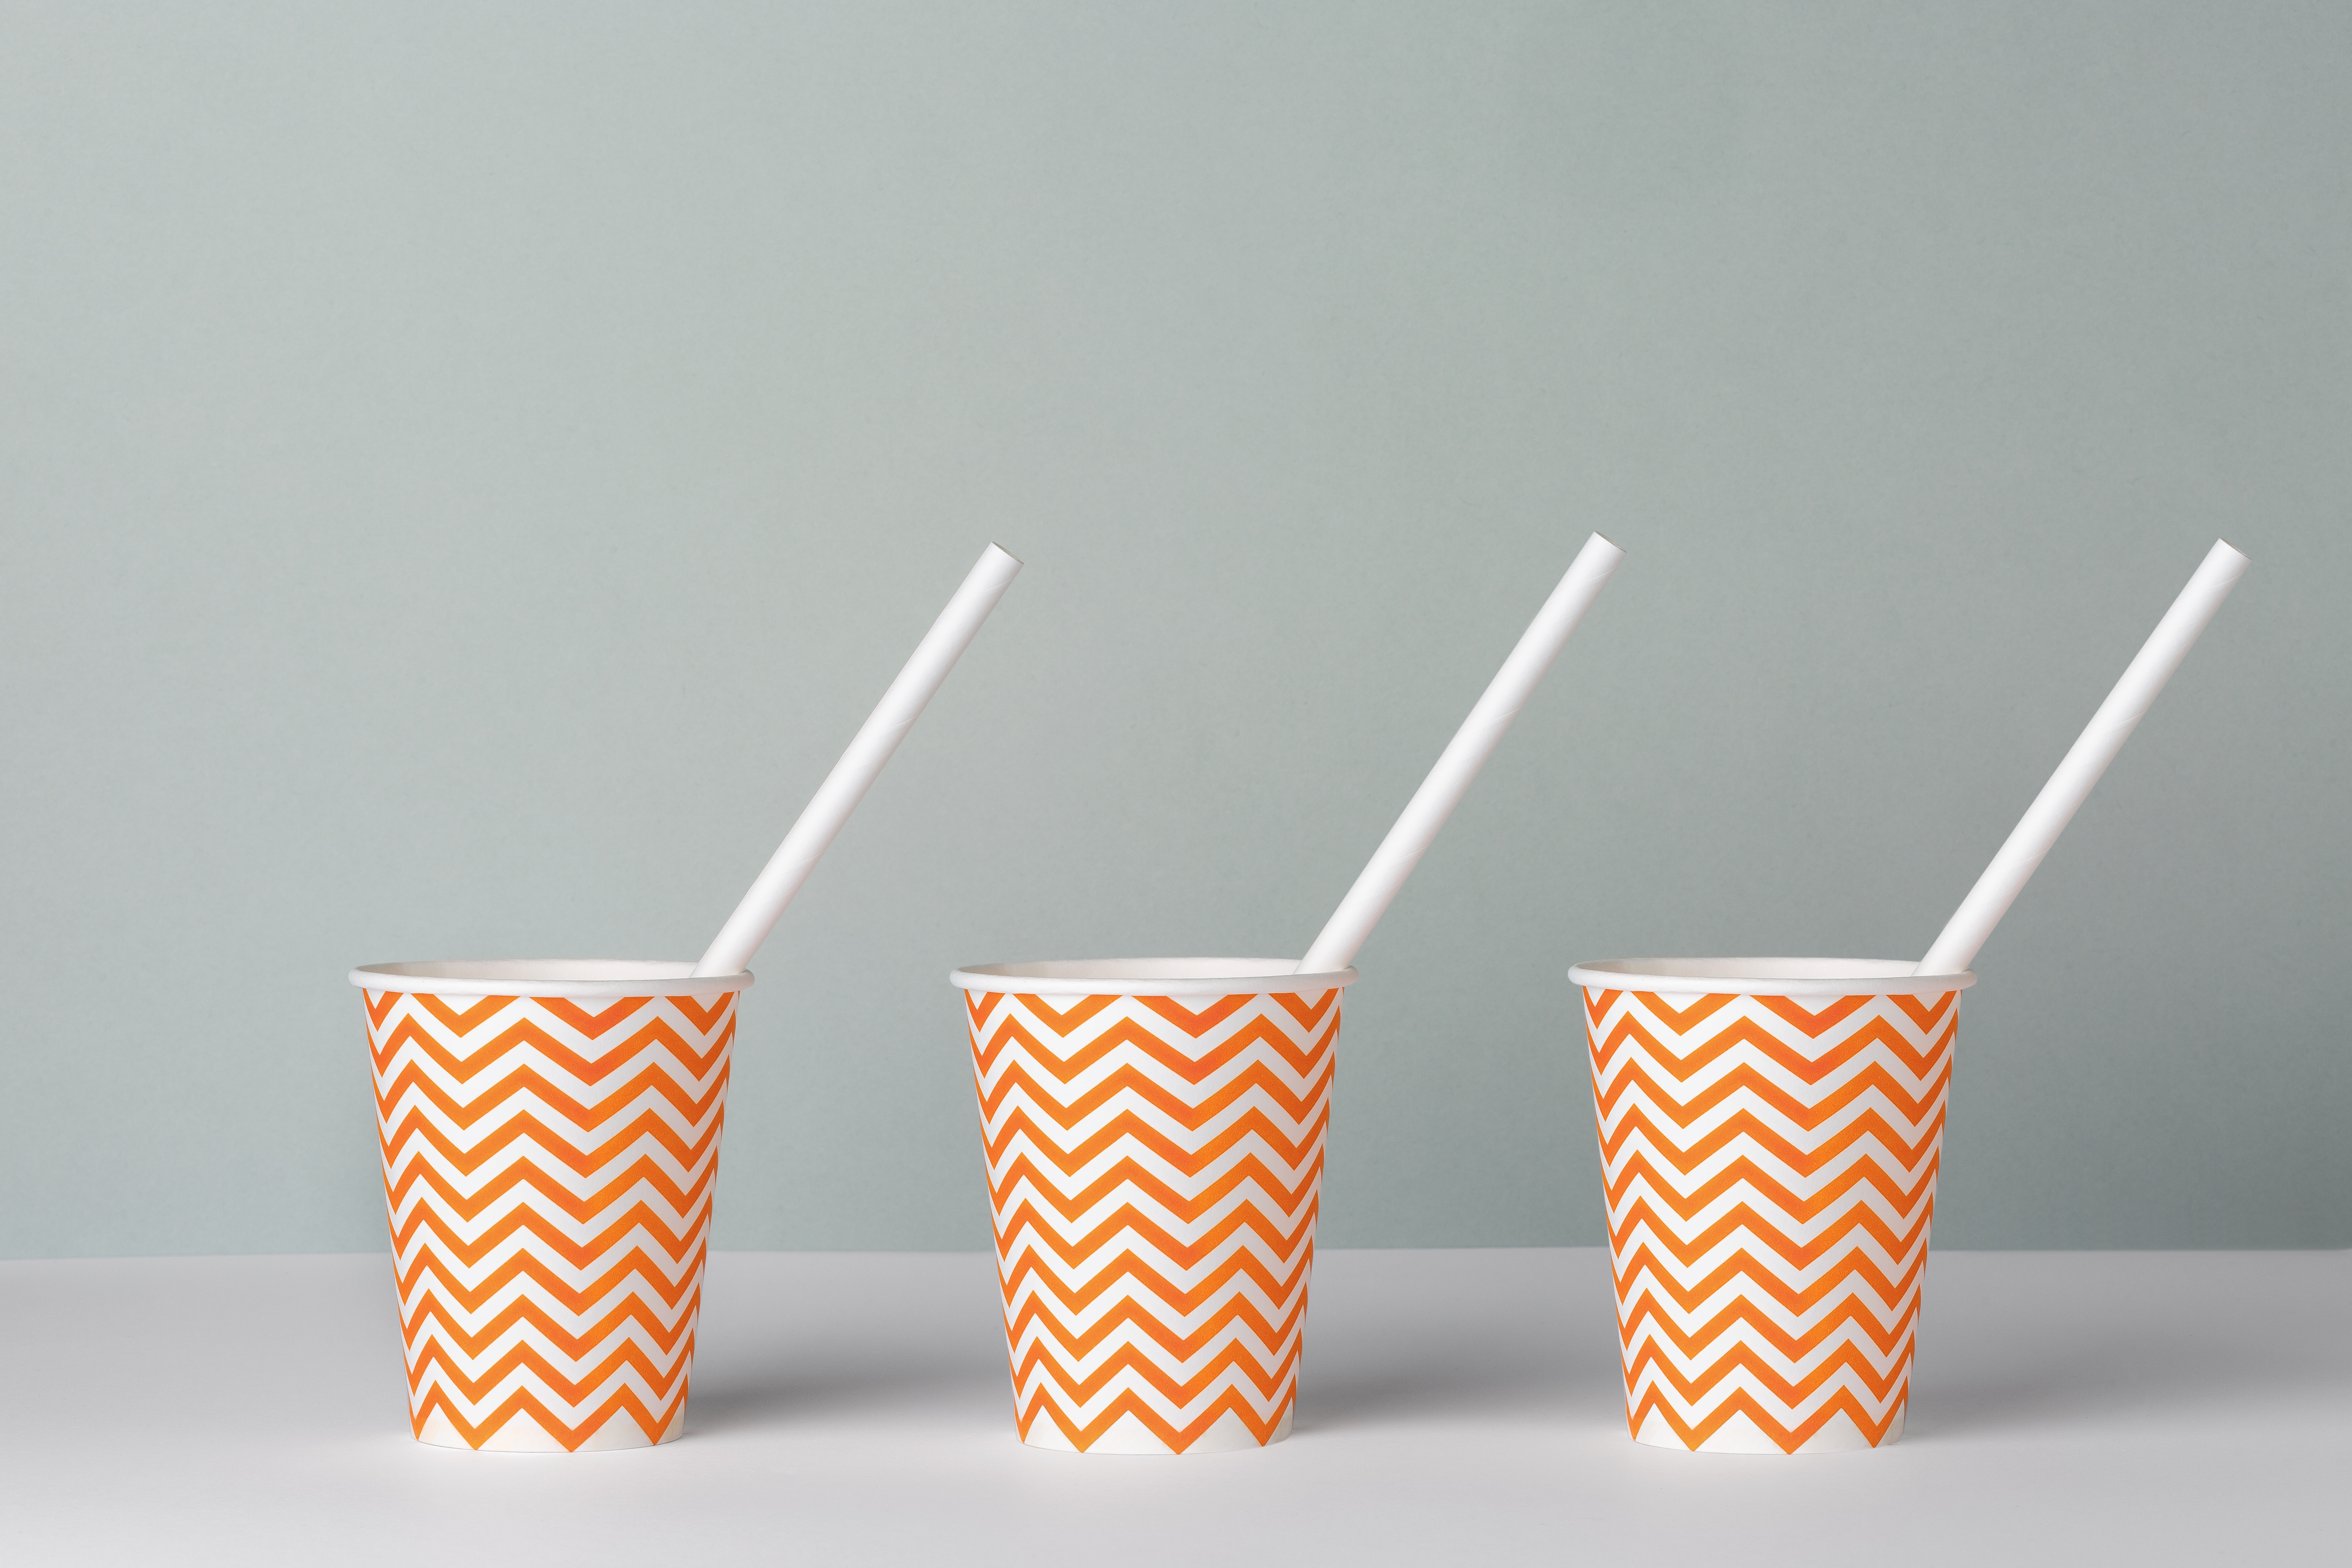 HD Horizontal CelluStraw PaperStrawSolution 3 gobelets